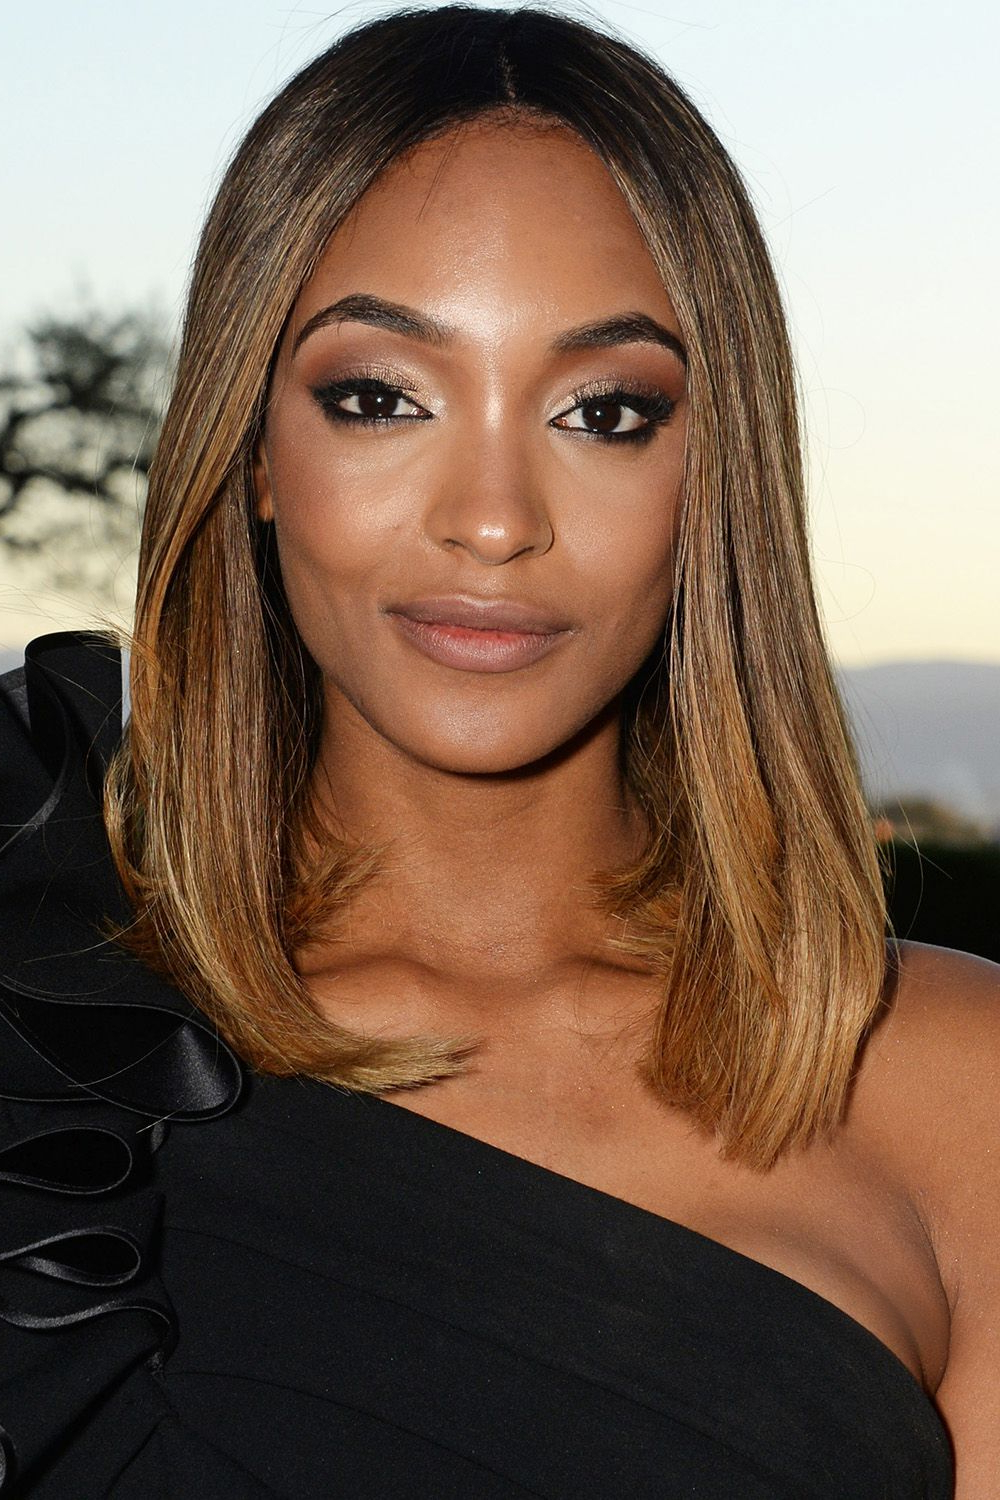 40 Best Medium Hairstyles – Celebrities With Shoulder Length Haircuts In Recent Medium Hairstyles For African American Women With Thin Hair (View 4 of 20)